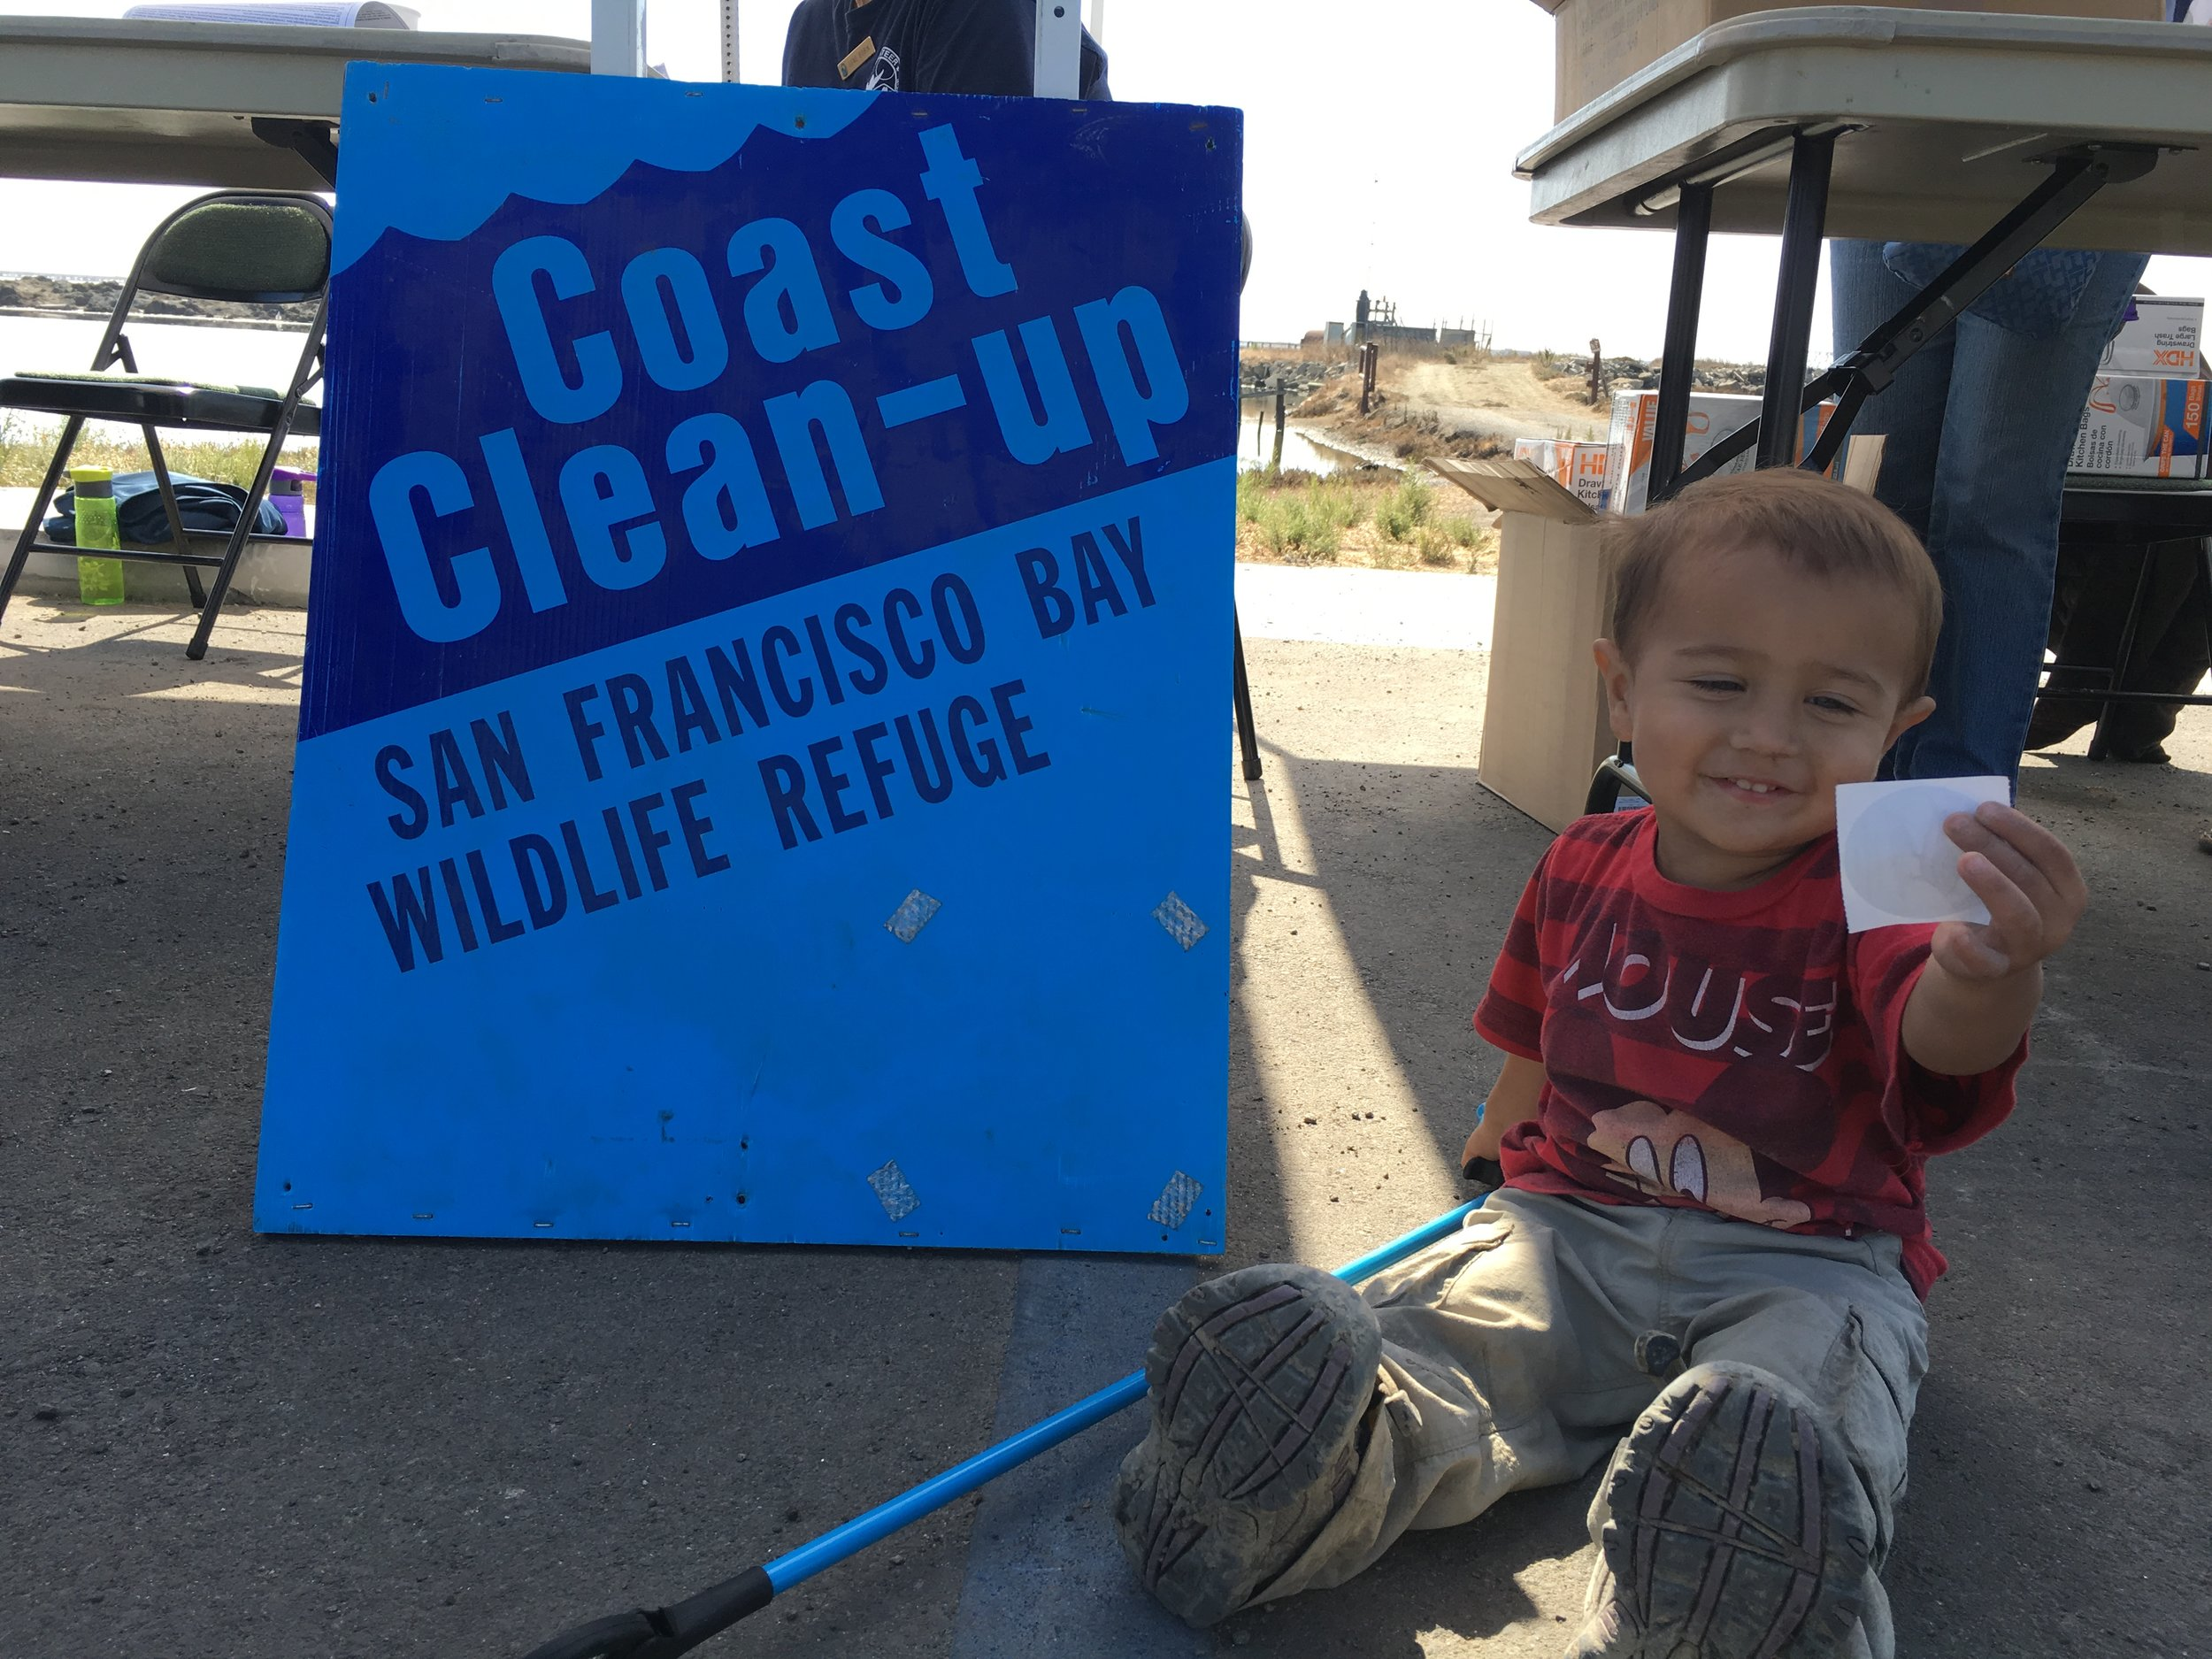 Pacha approves of Coastal Clean-Ups!